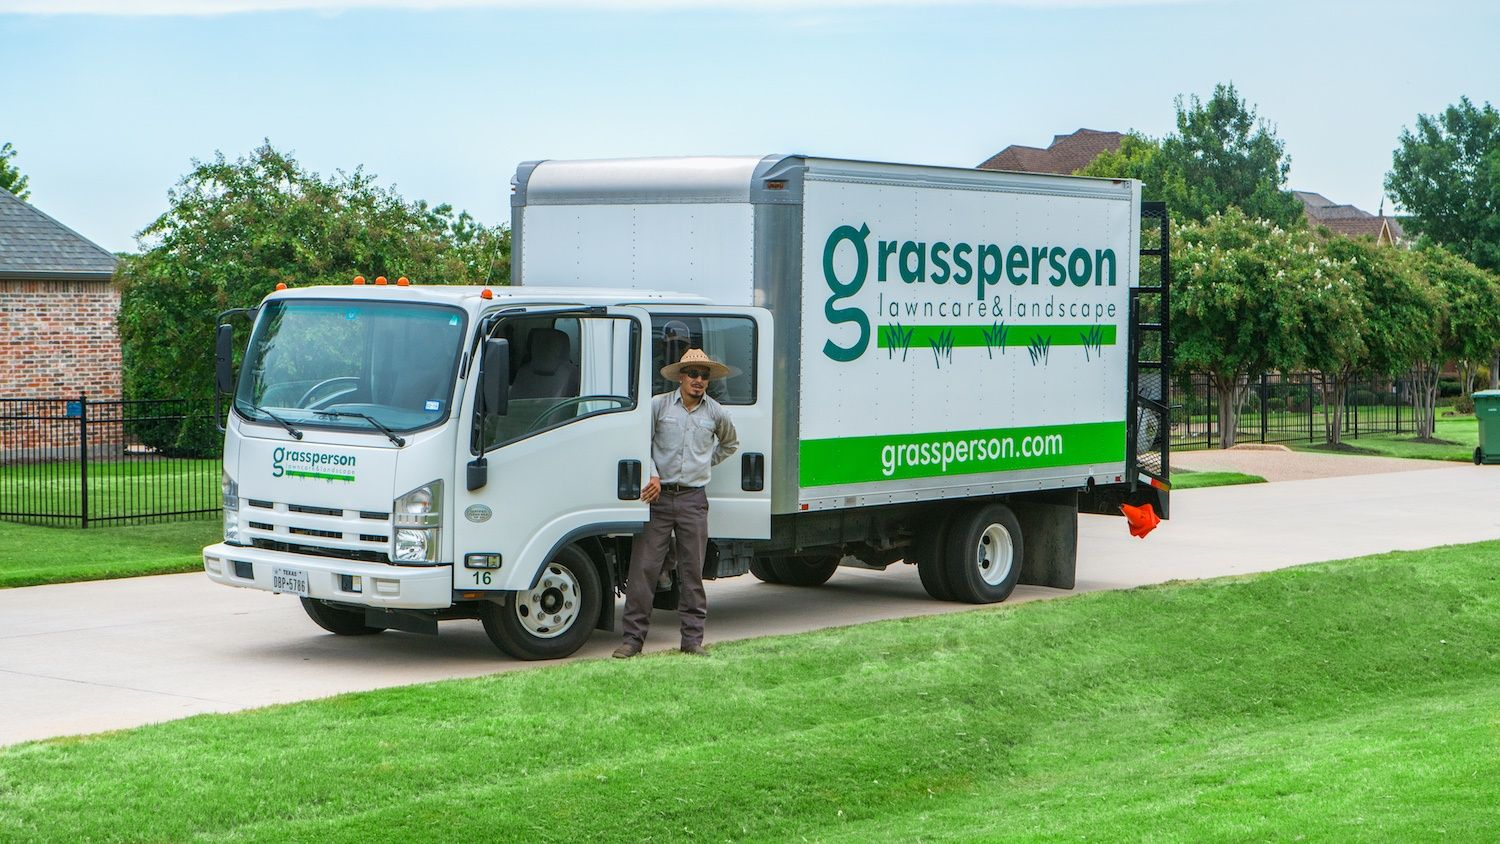 Grassperson lawn care service truck at Flower Mound, TX lawn